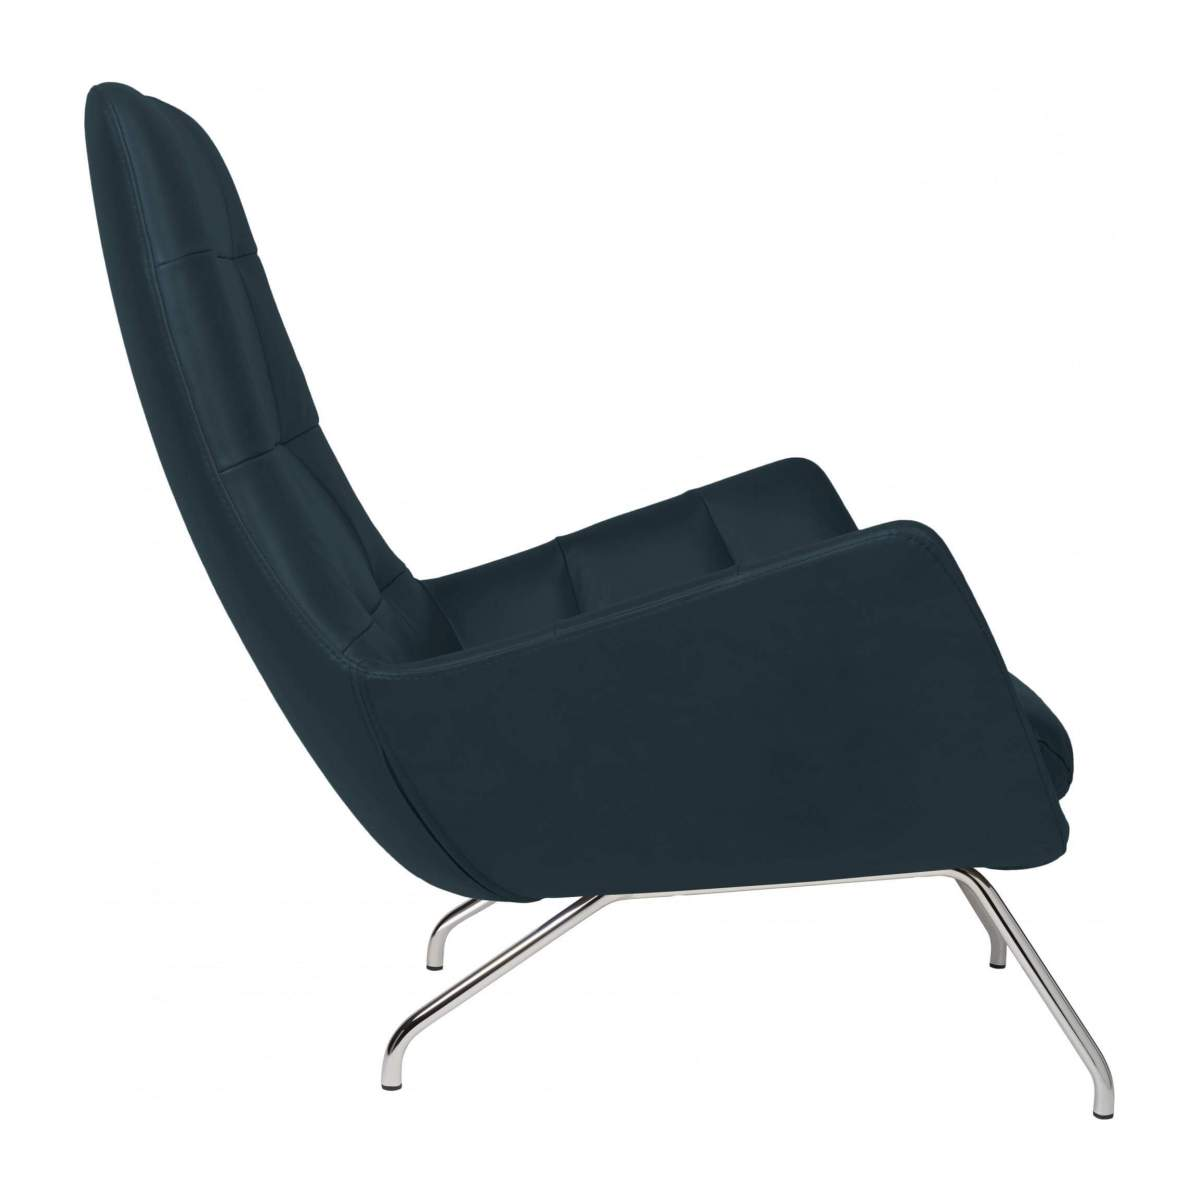 Armchair in Vintage aniline leather, denim blue with chromed metal legs n°4